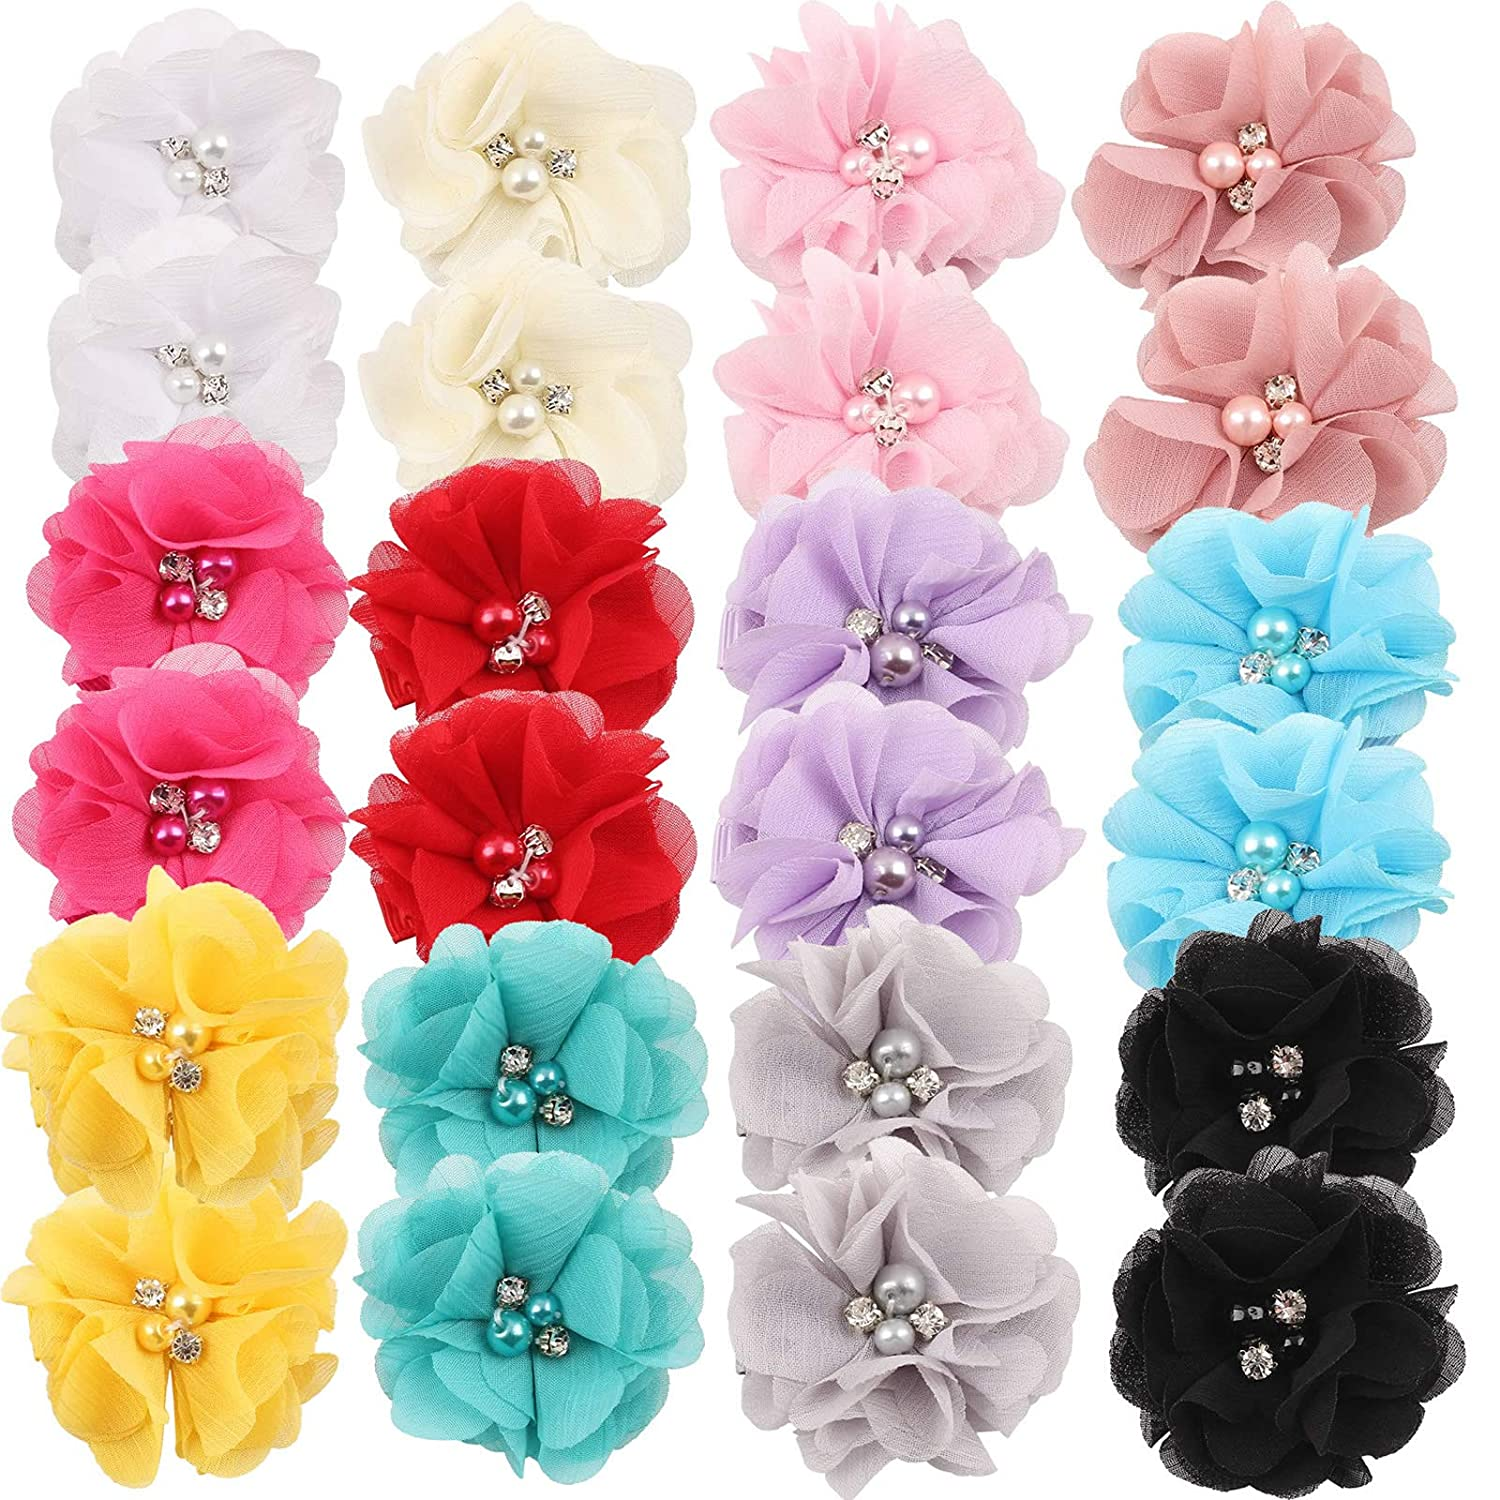 "inSowni 2"" Alligator Hair Clips Barrettes Chiffon Flower Bow with Rhinestone Pearl for Baby Girl Toddlers"